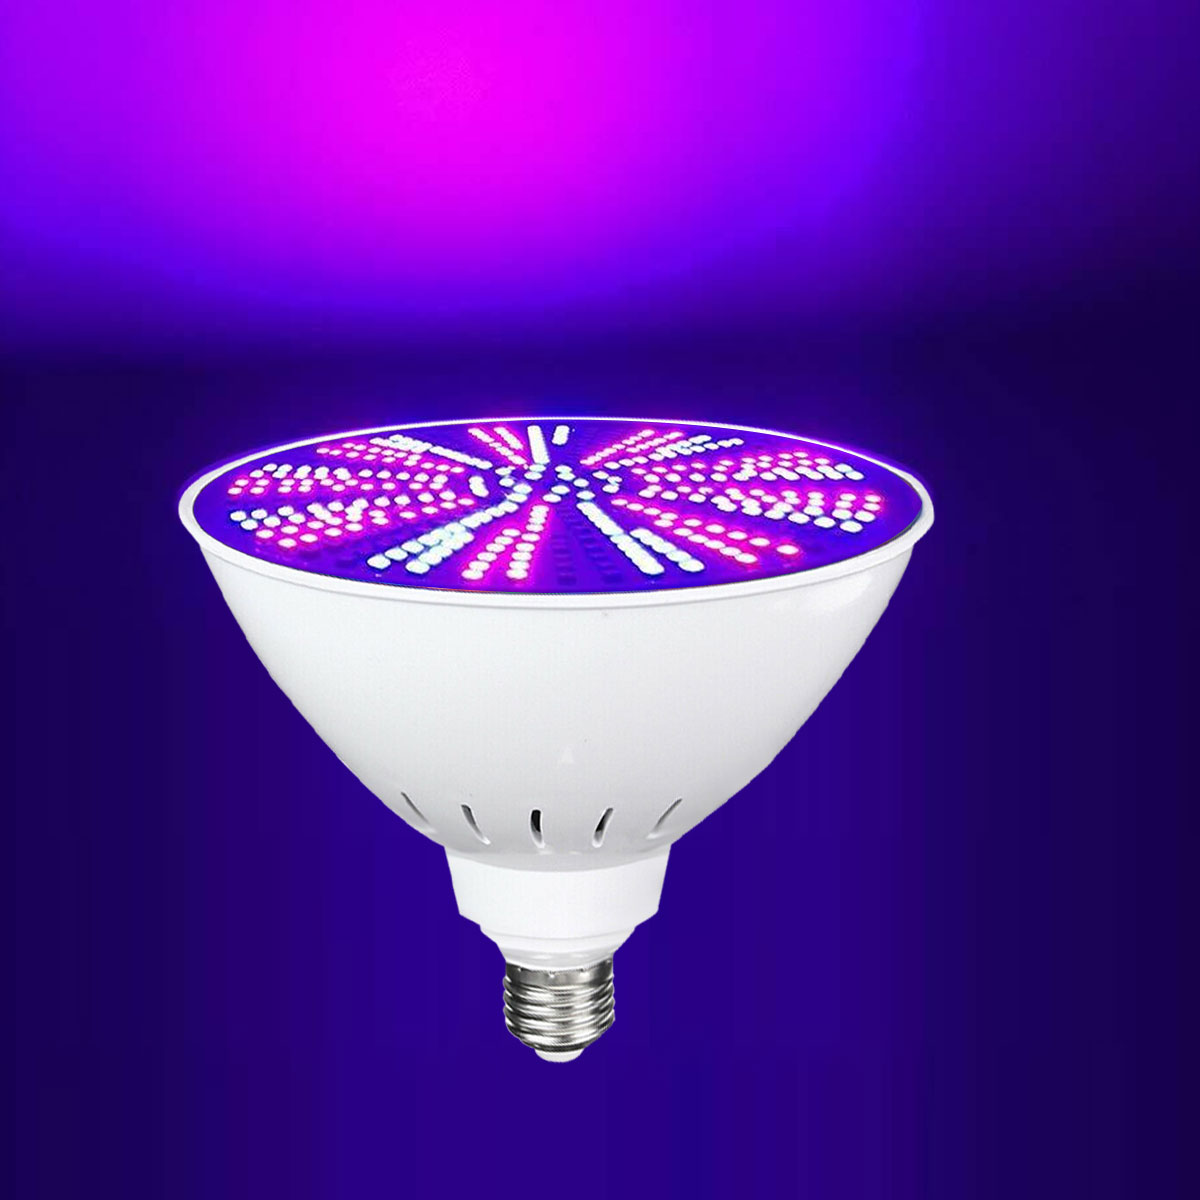 E26 E27 12V 35W RGB PAR56 423LED Swimming Pool Light Colorful Change Light Bulb + Remote Control